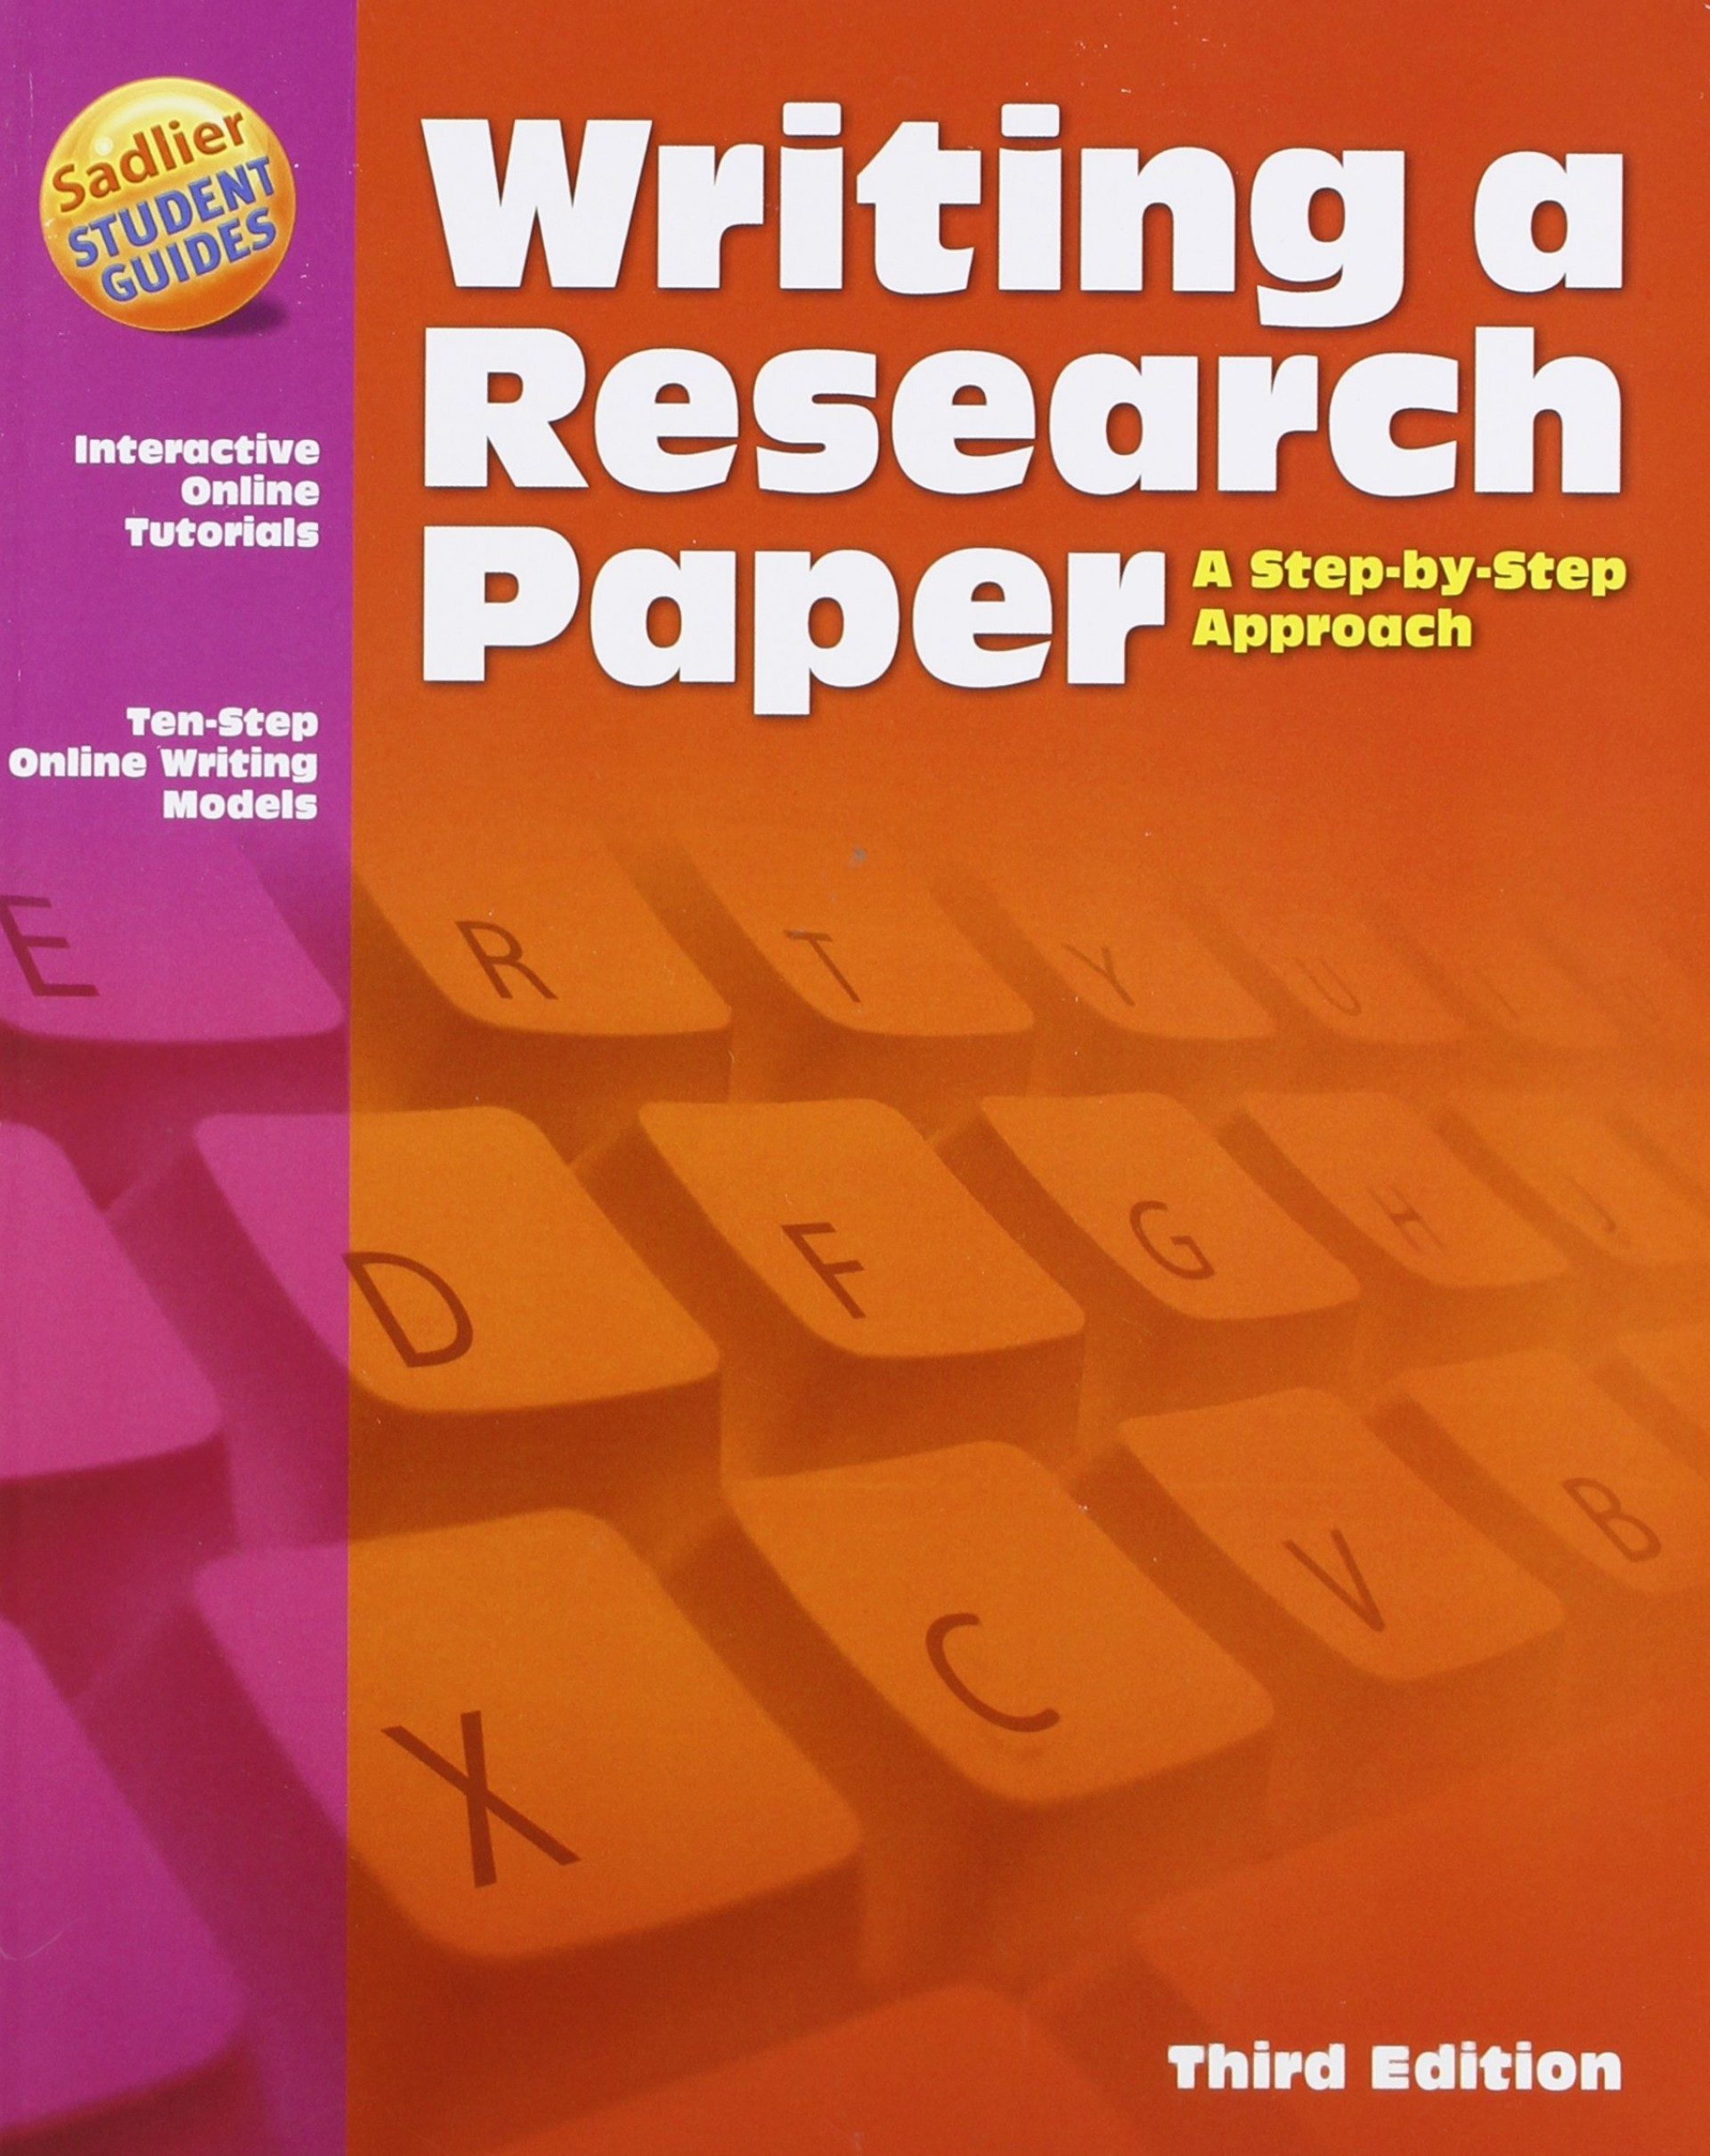 010 81uqfpthpml Research Paper Steps To Writing Fearsome A In Apa Format Mla Style 1920